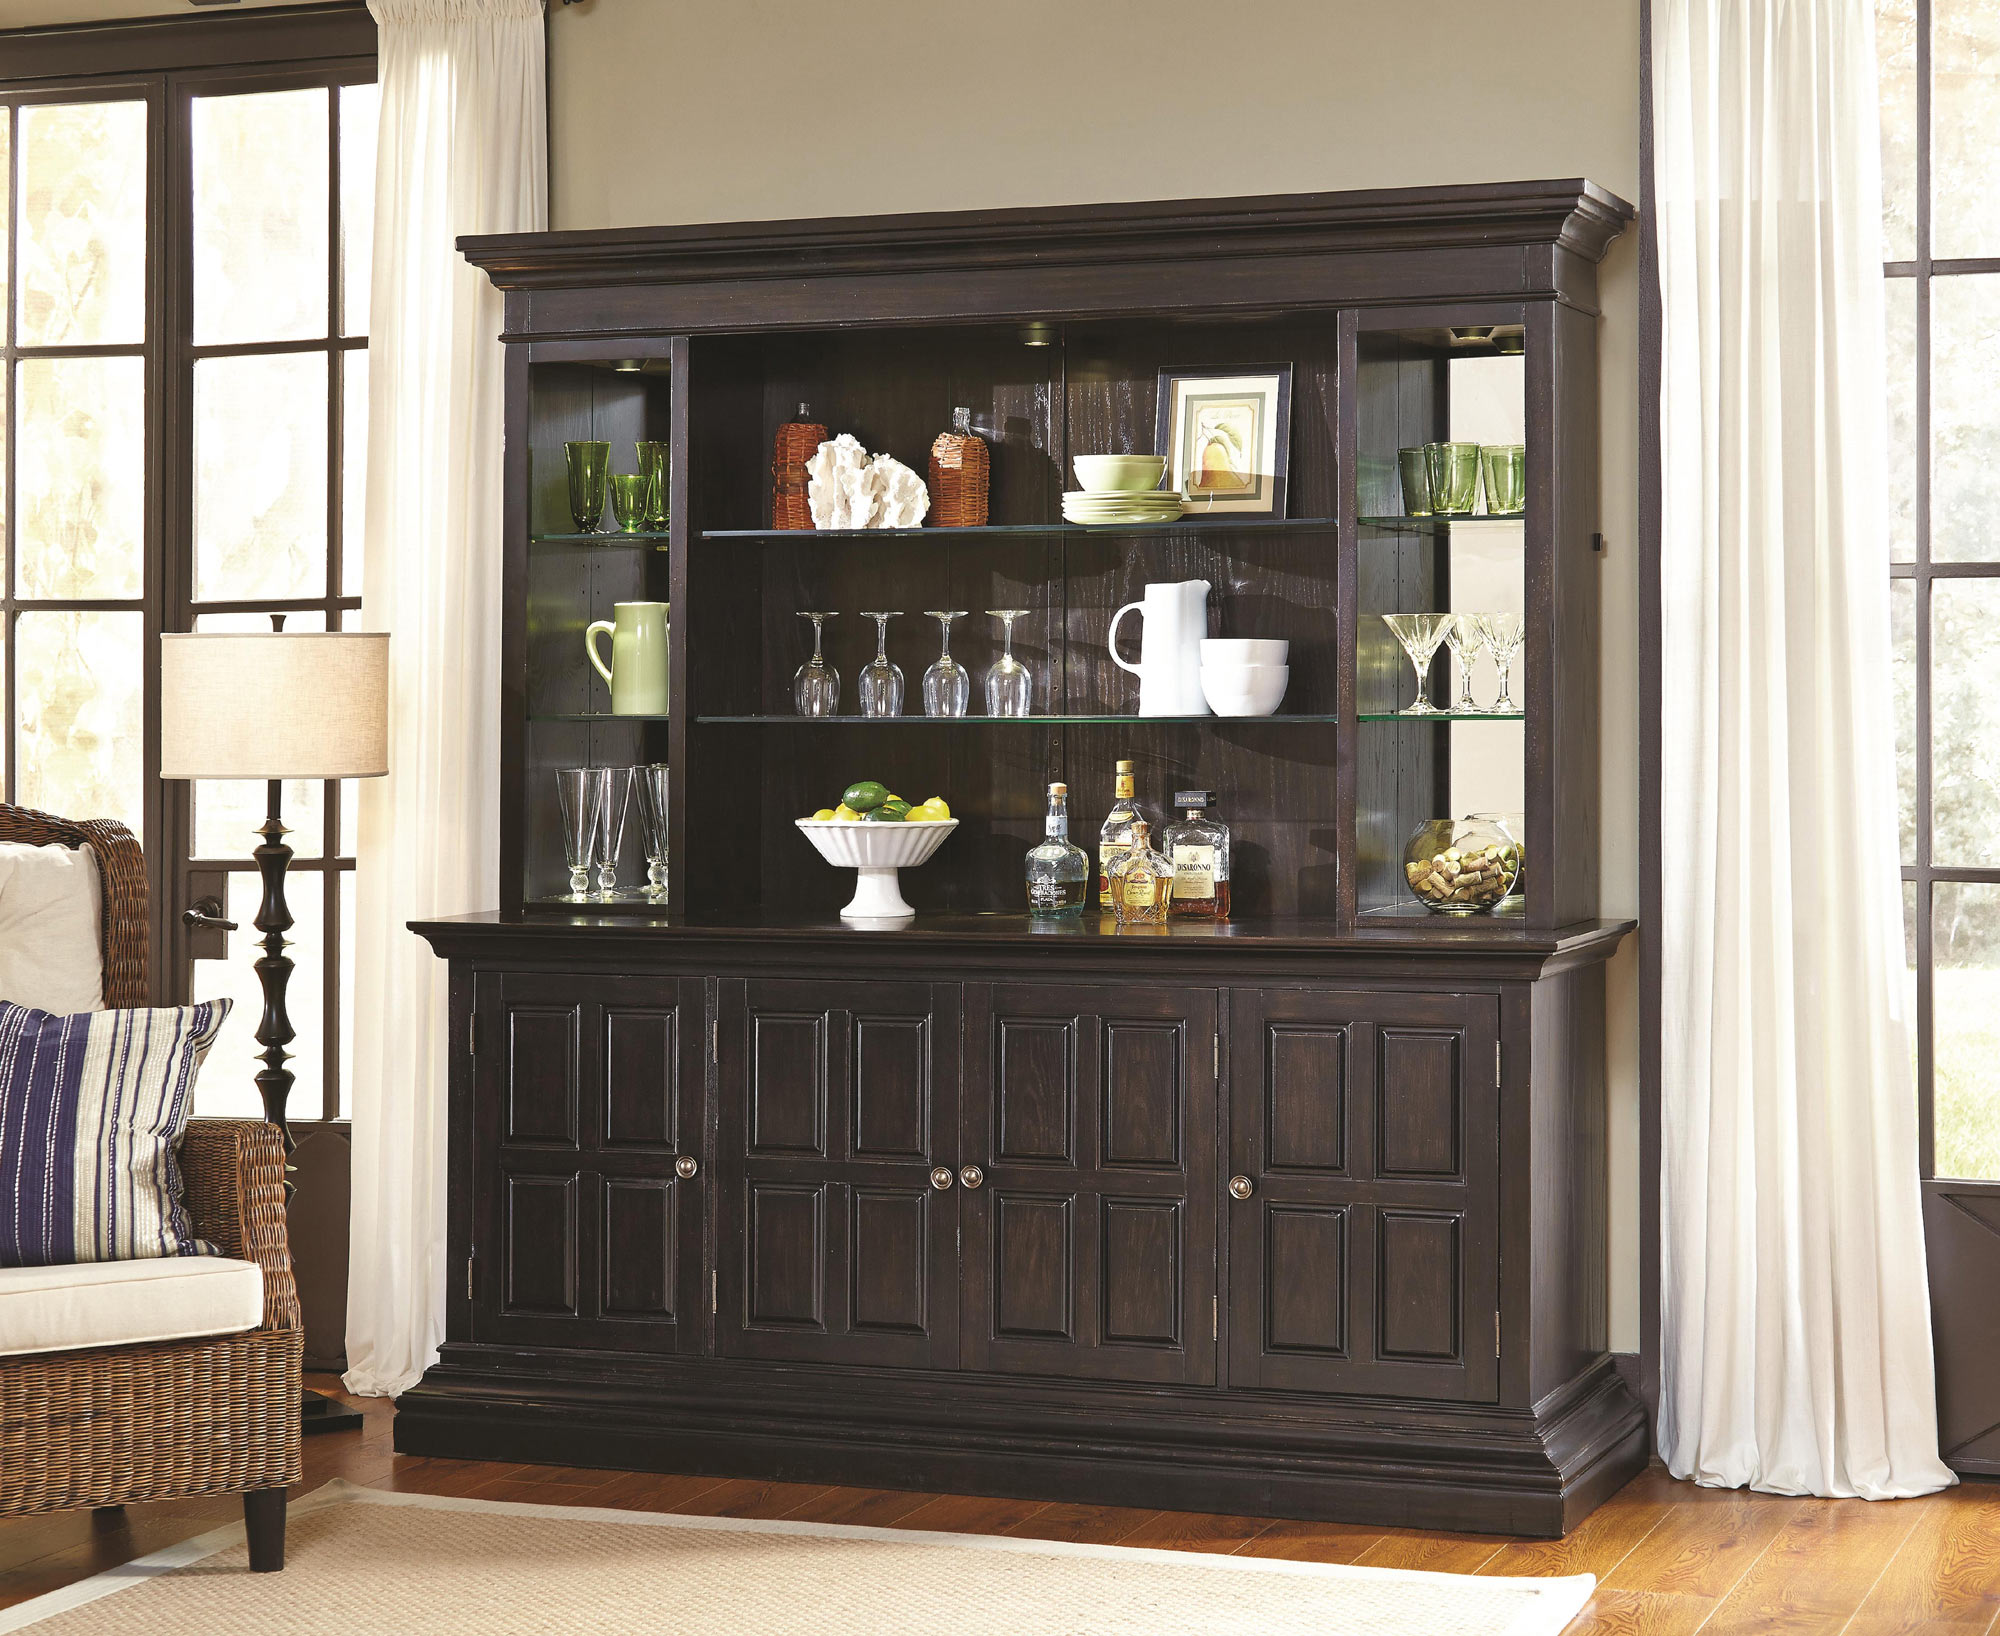 Burton Back Bar In Dark Wood By Ski Home Gallery S